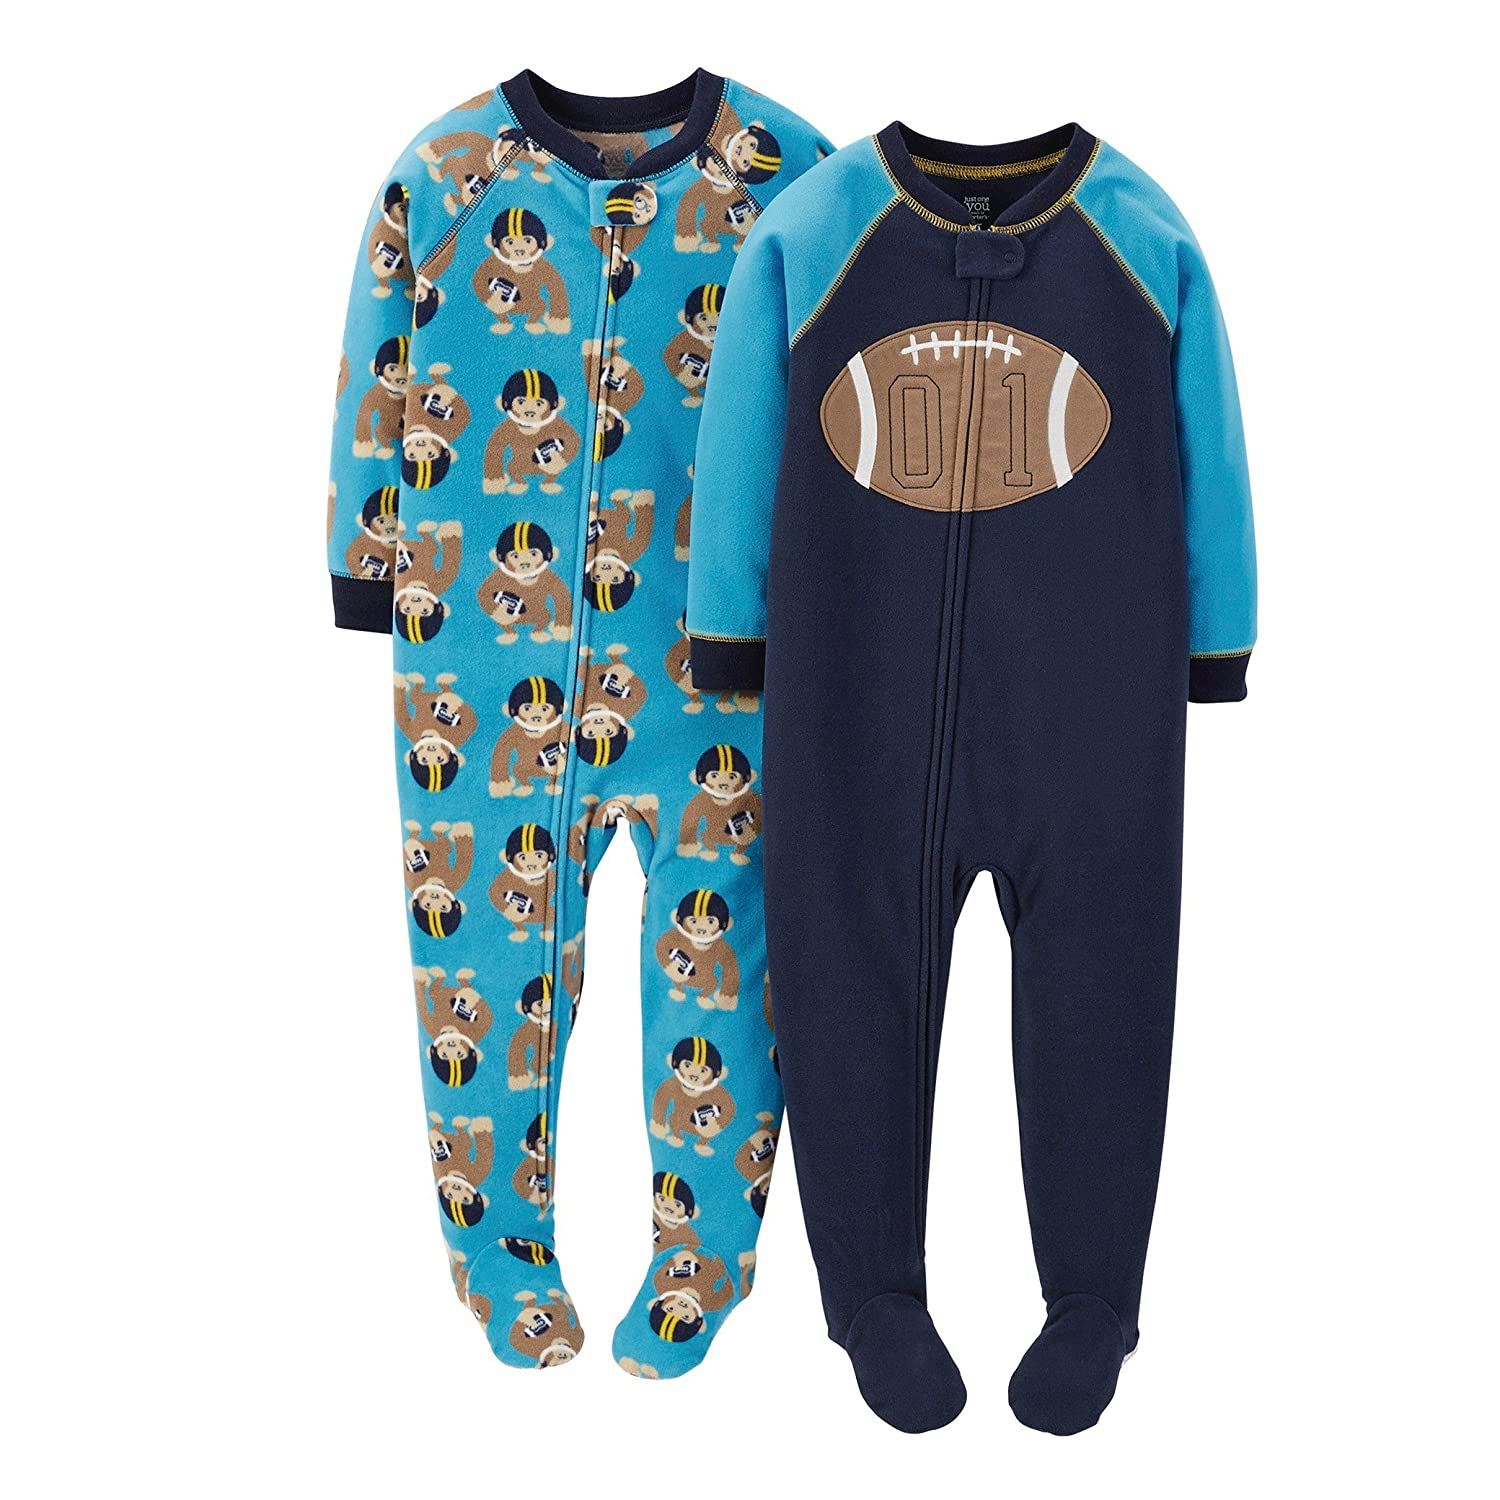 61b9f02955 Amazon.com  Carters Boys Footie Pajamas Sleeper Multi Pack (Many Themes)  (12 Months